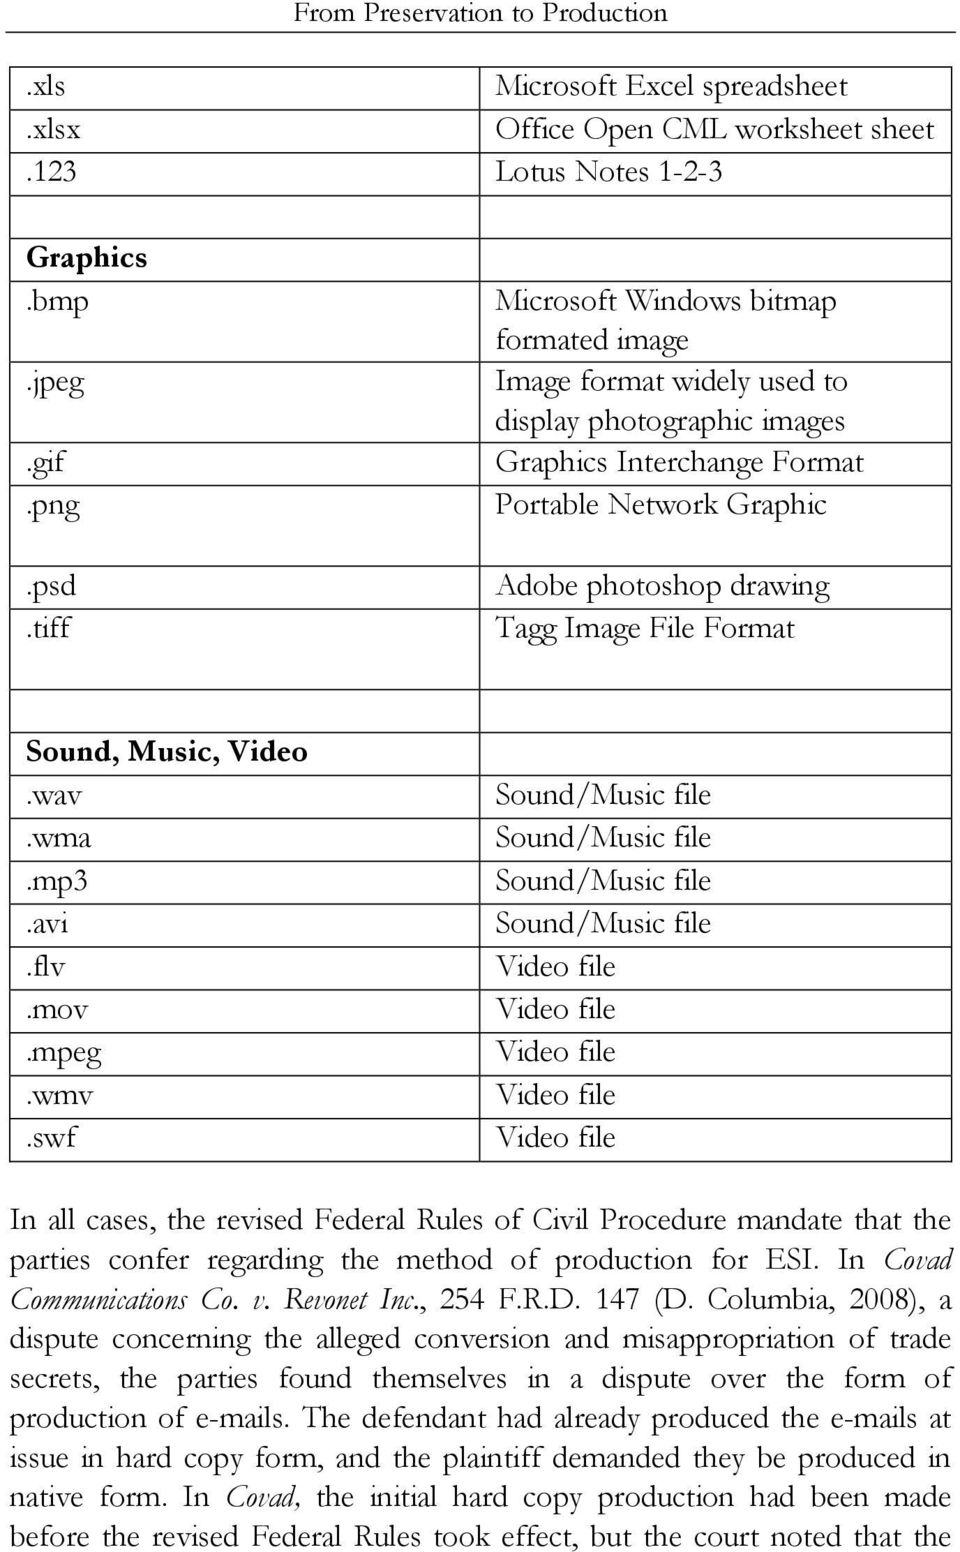 Format Sound, Music, Video.wav.wma.mp3.avi.flv.mov.mpeg.wmv.